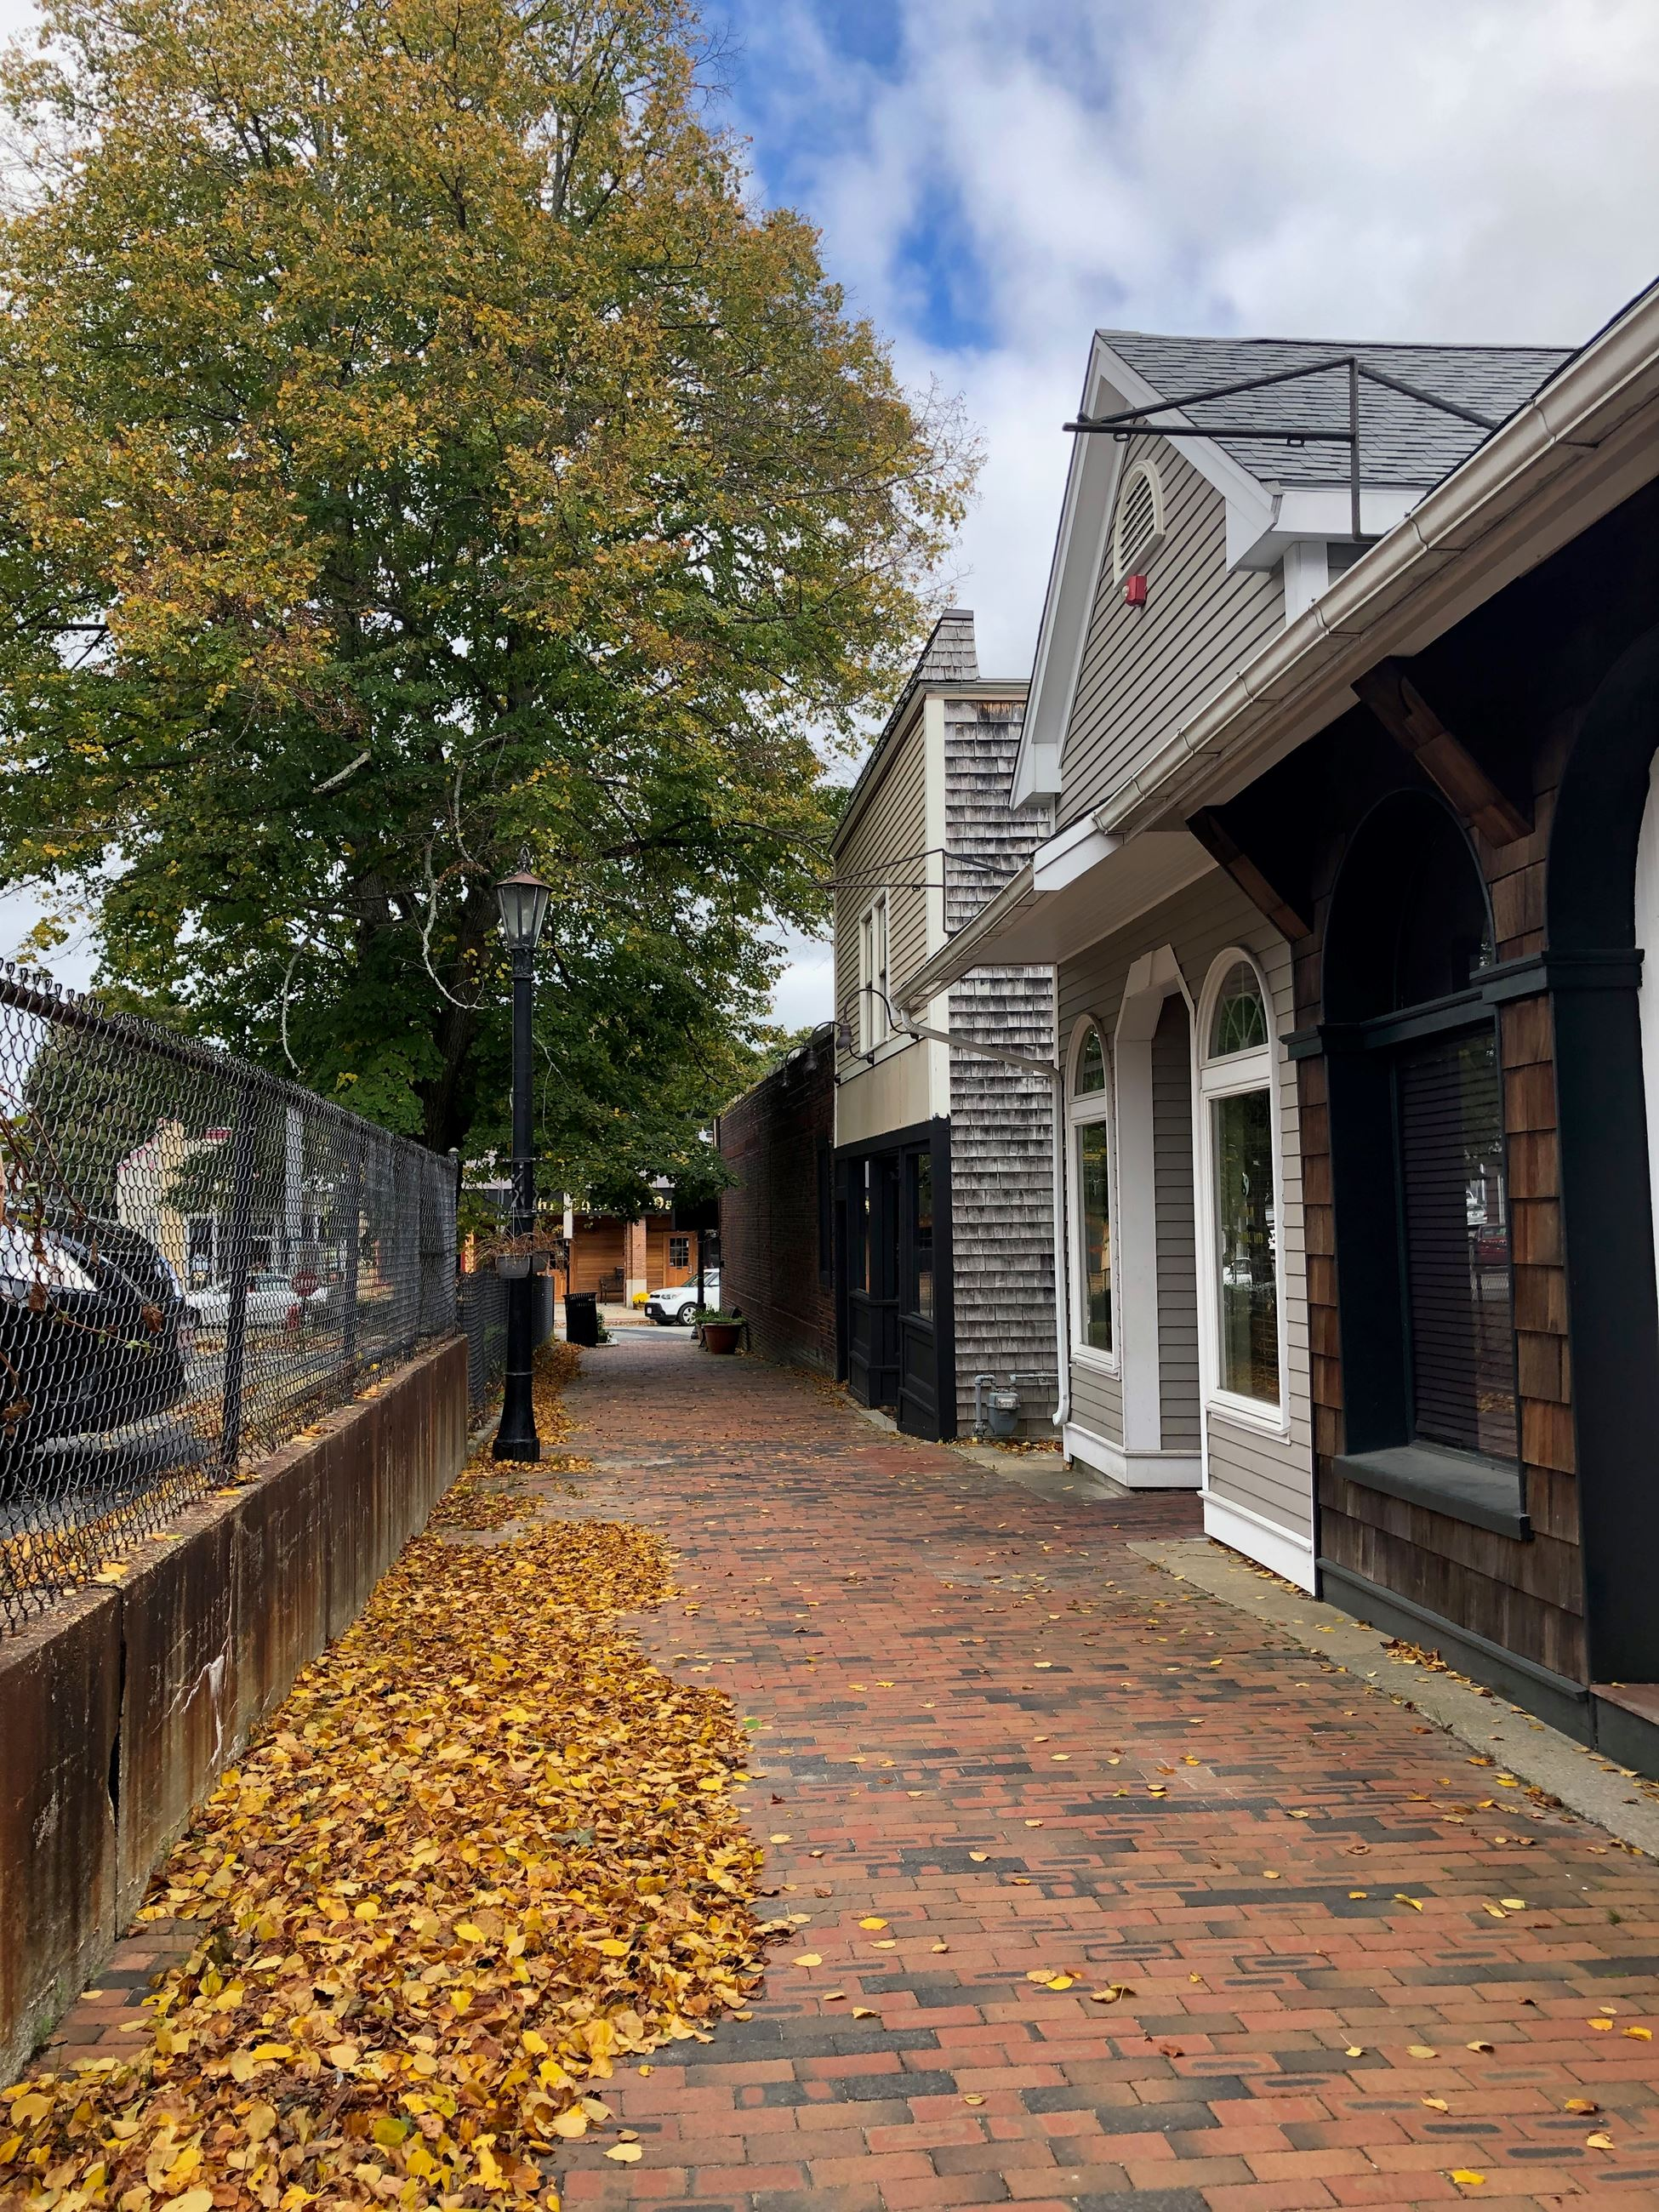 Thatchers Row in the Fall